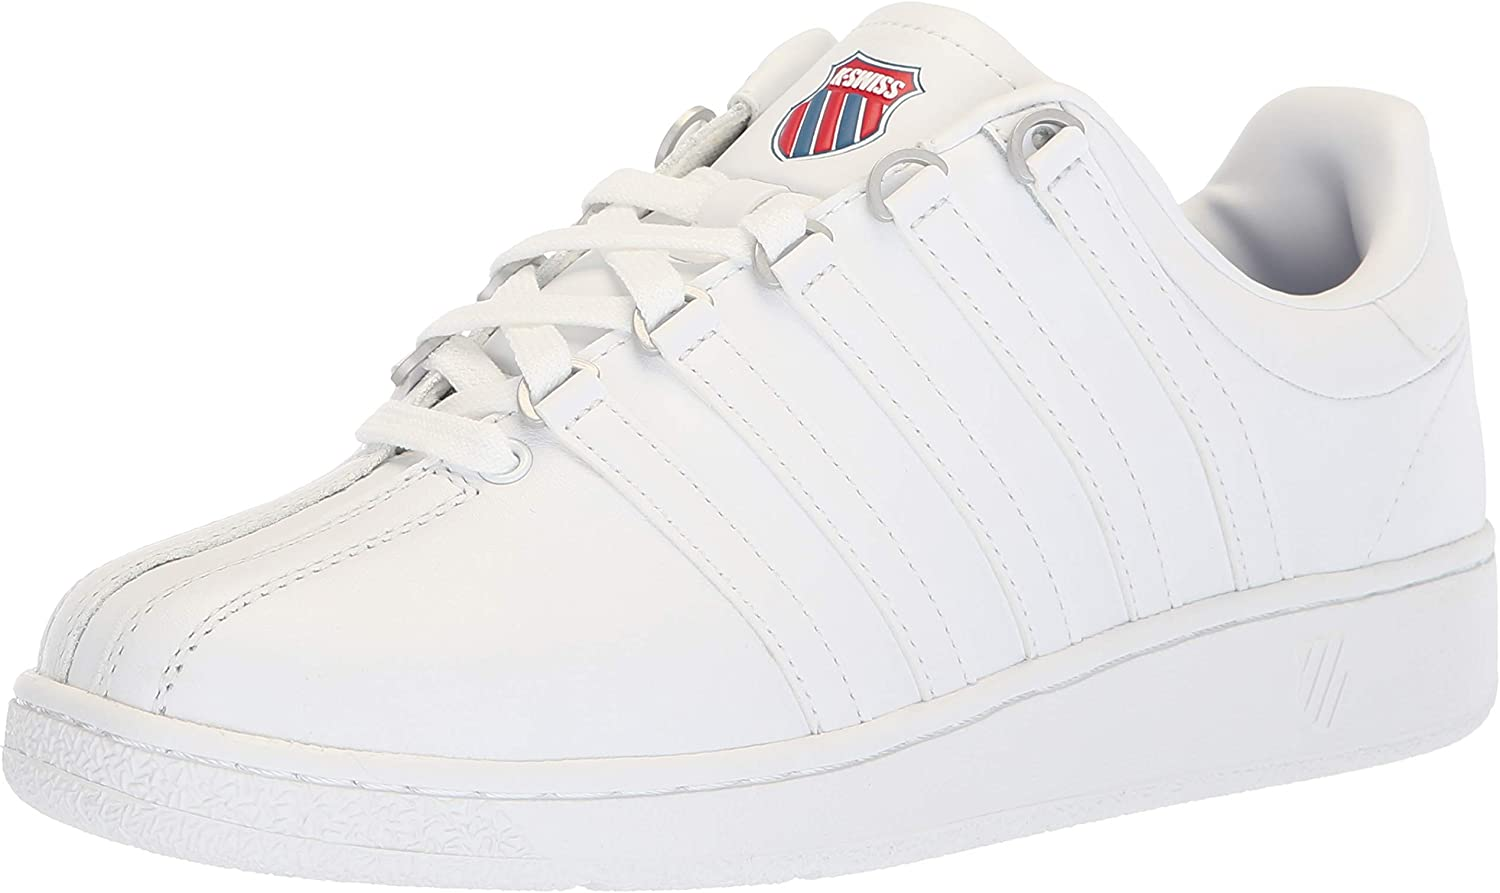 Vintage Sneakers, Retro Designs for Women K-Swiss Mens Classic Vn Heritage Sneaker $39.99 AT vintagedancer.com